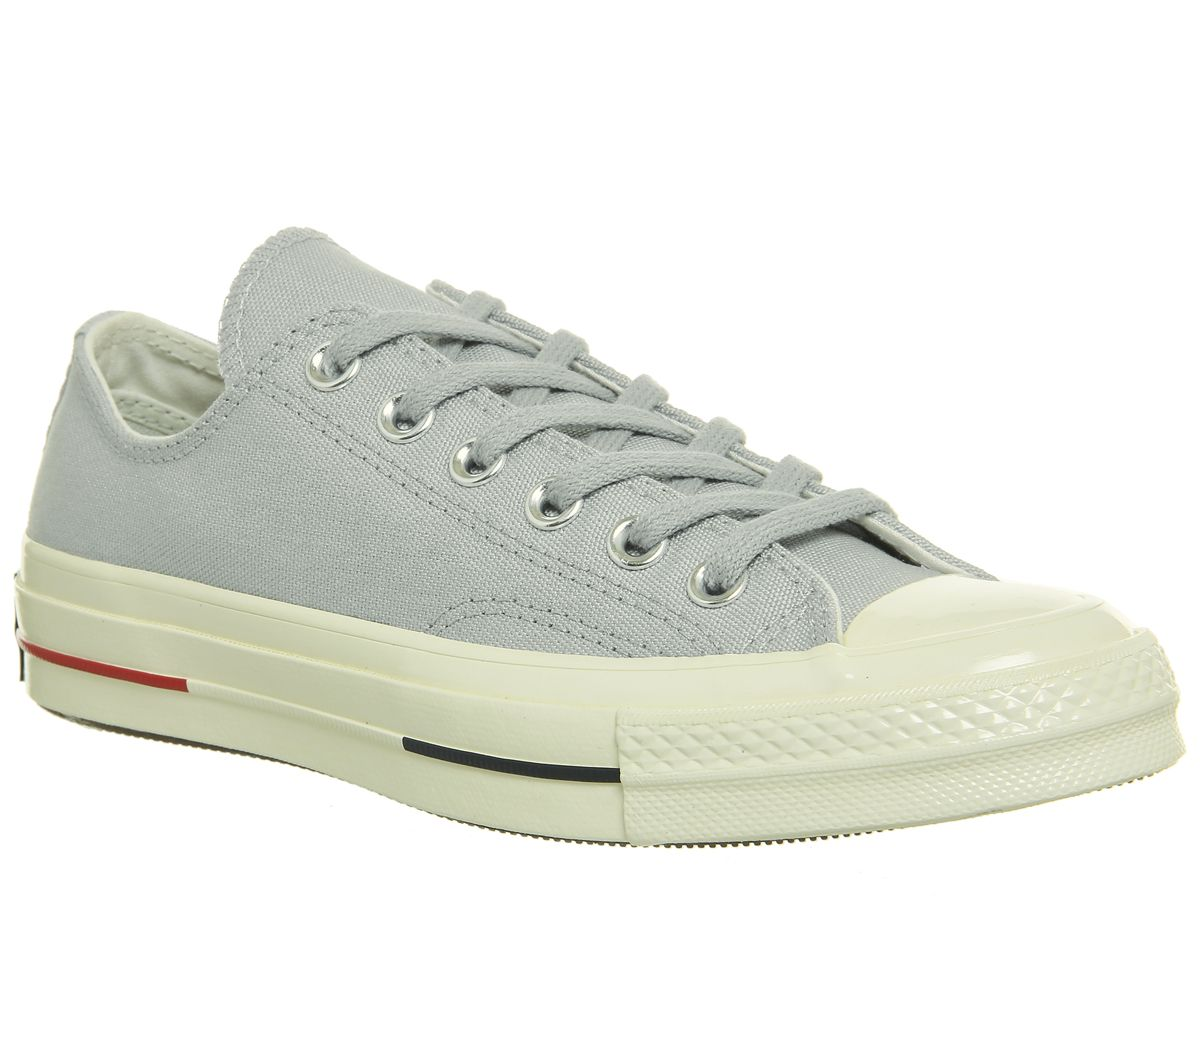 c1904eea9da5 Converse All Star Ox 70 s Wolf Grey Navy Gym Red - His trainers